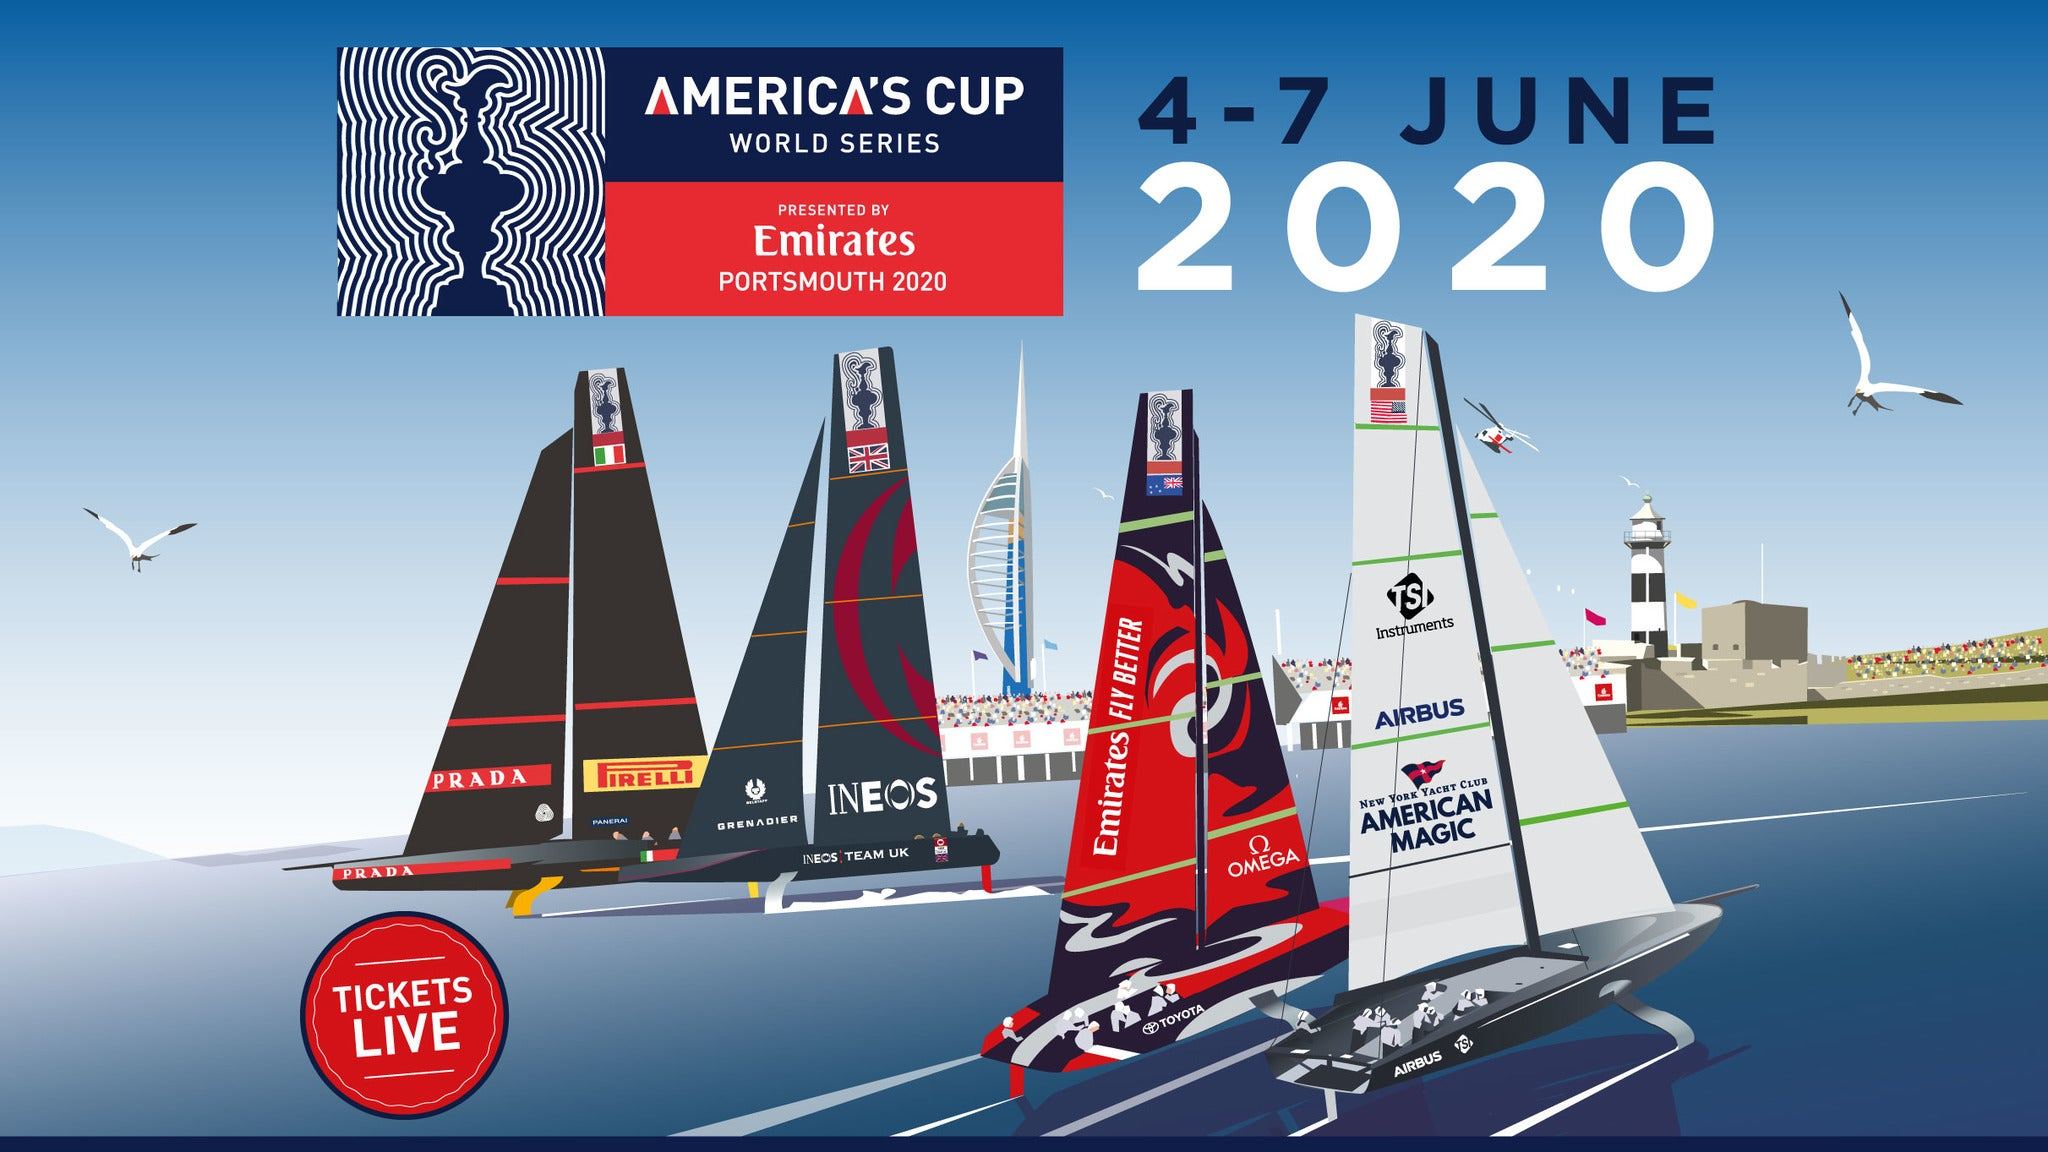 Emirates America's Cup World Series - Weekend Pass - Emirates Lounge